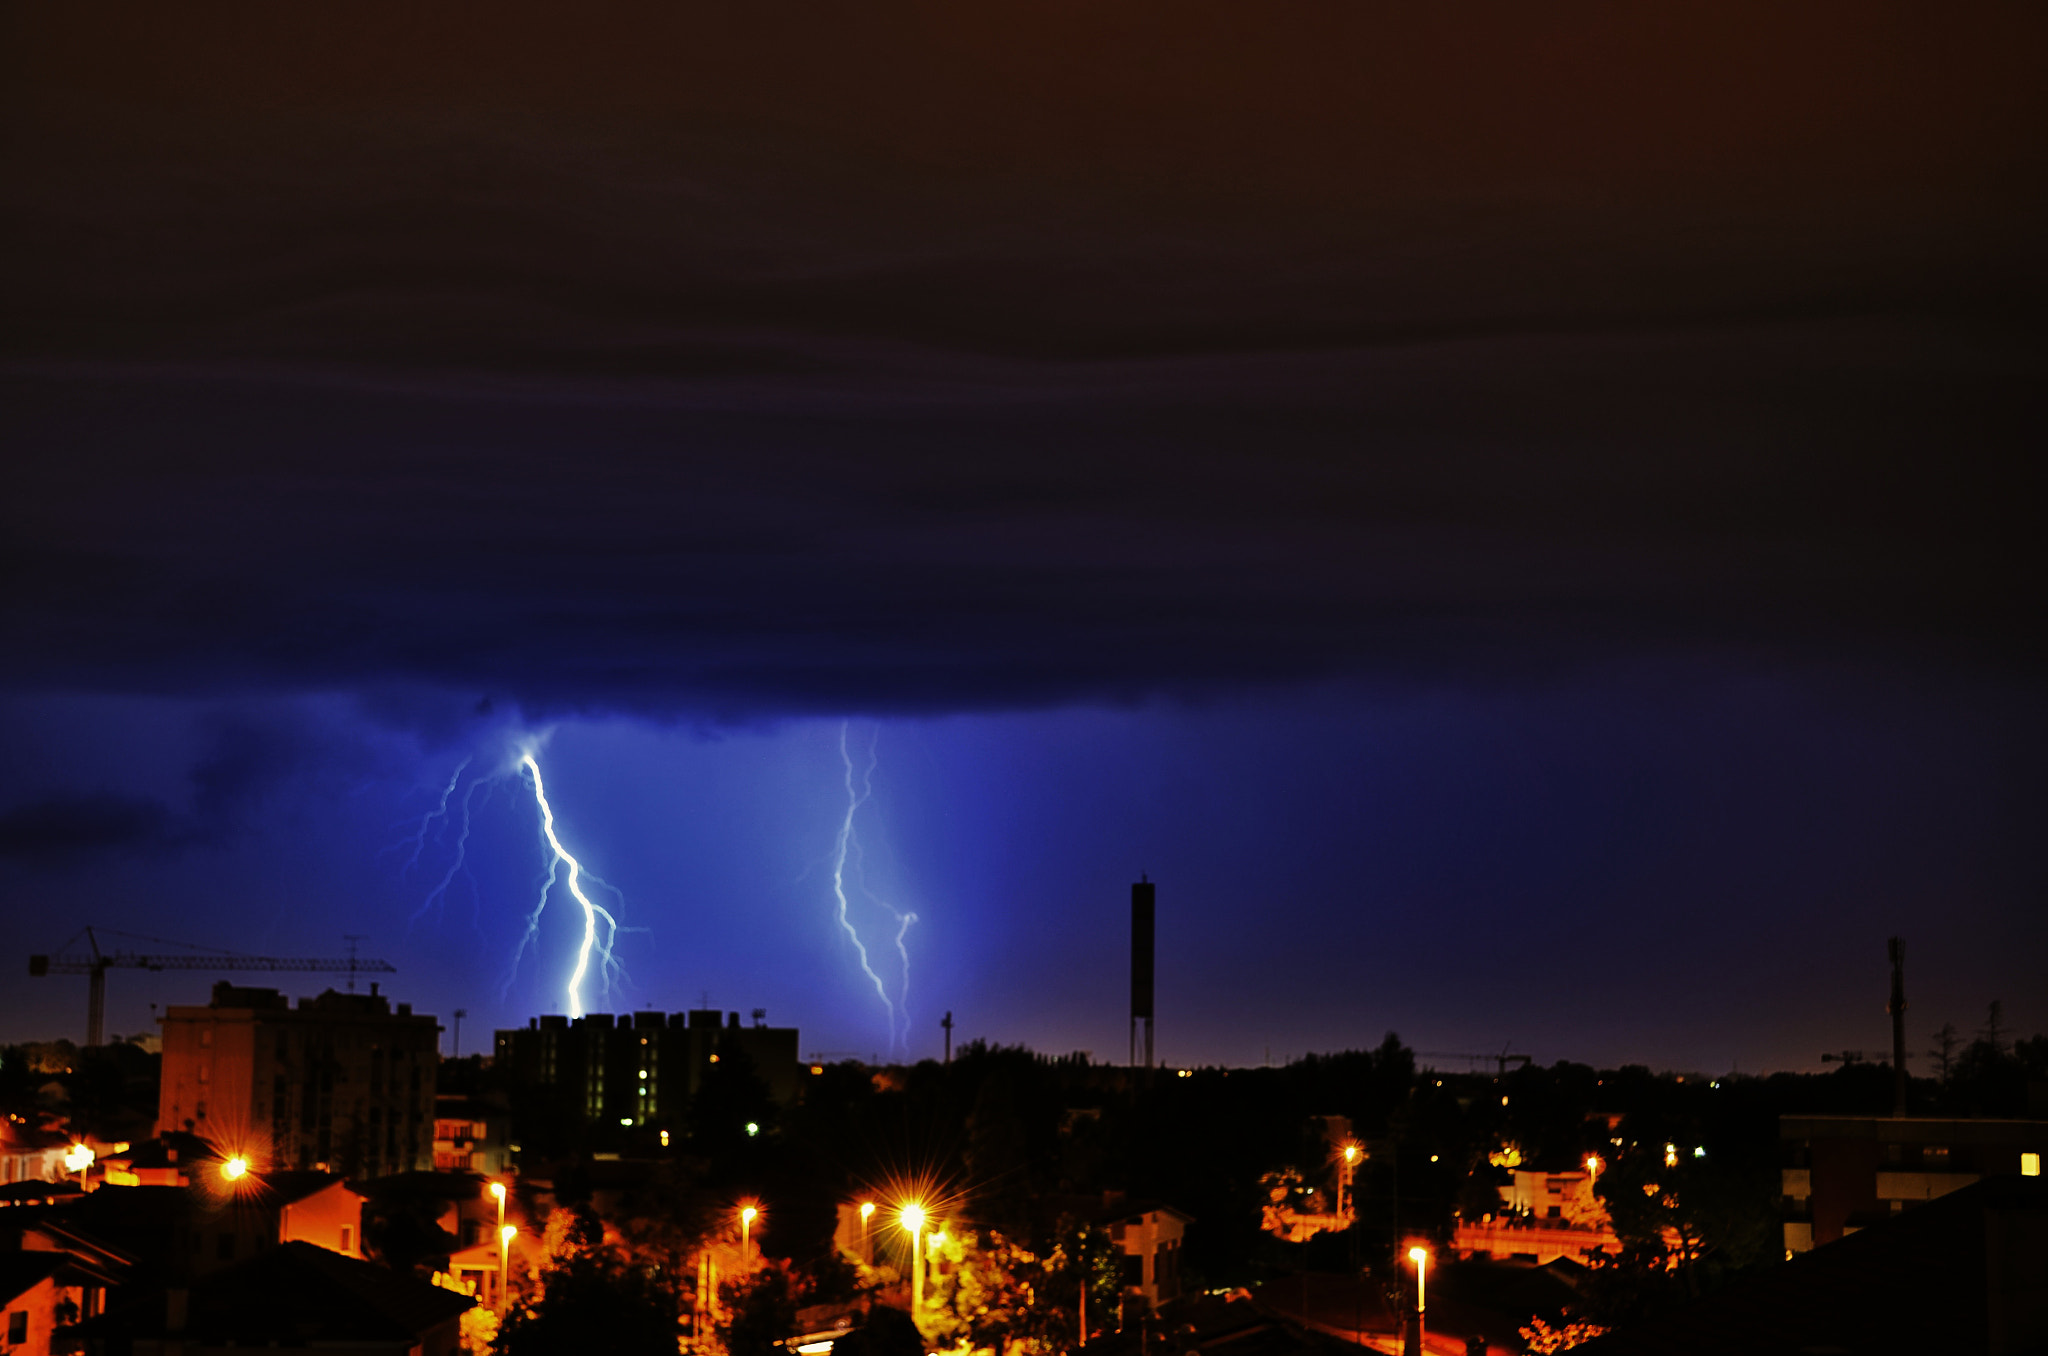 Photograph Lightning by Tiziano Rigo on 500px